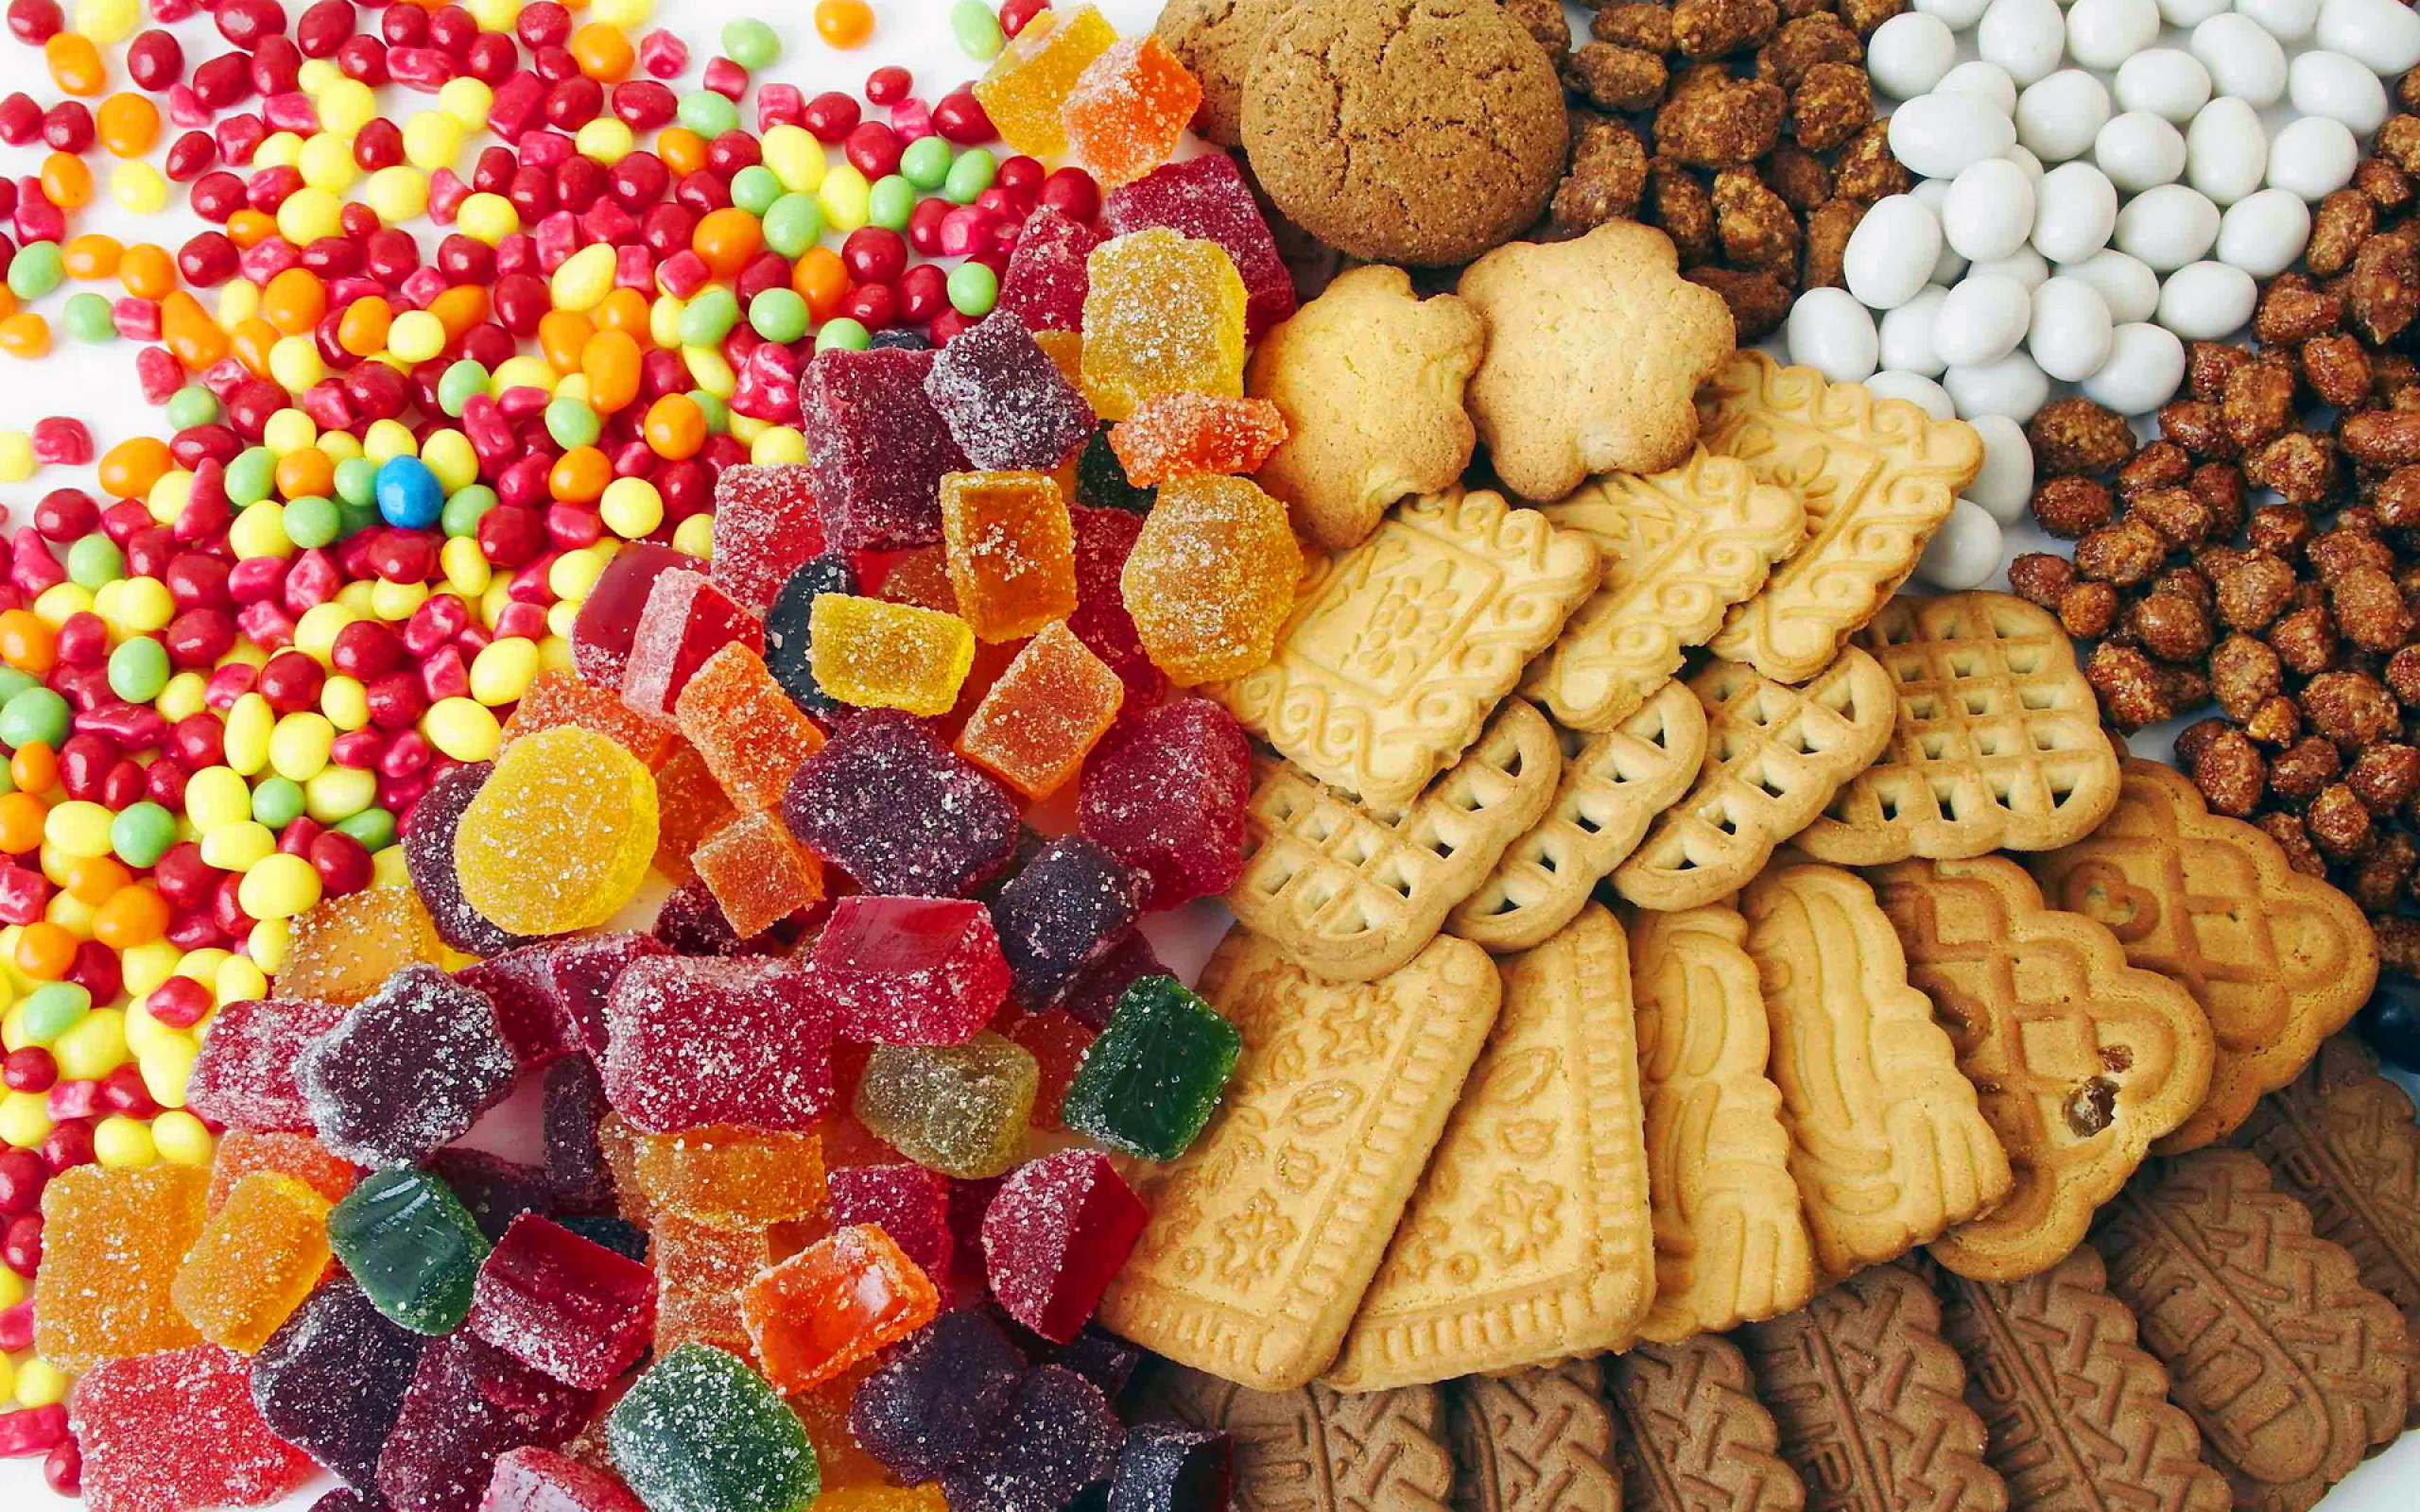 Food_Cakes_and_Sweet_Various_sweets_029271_